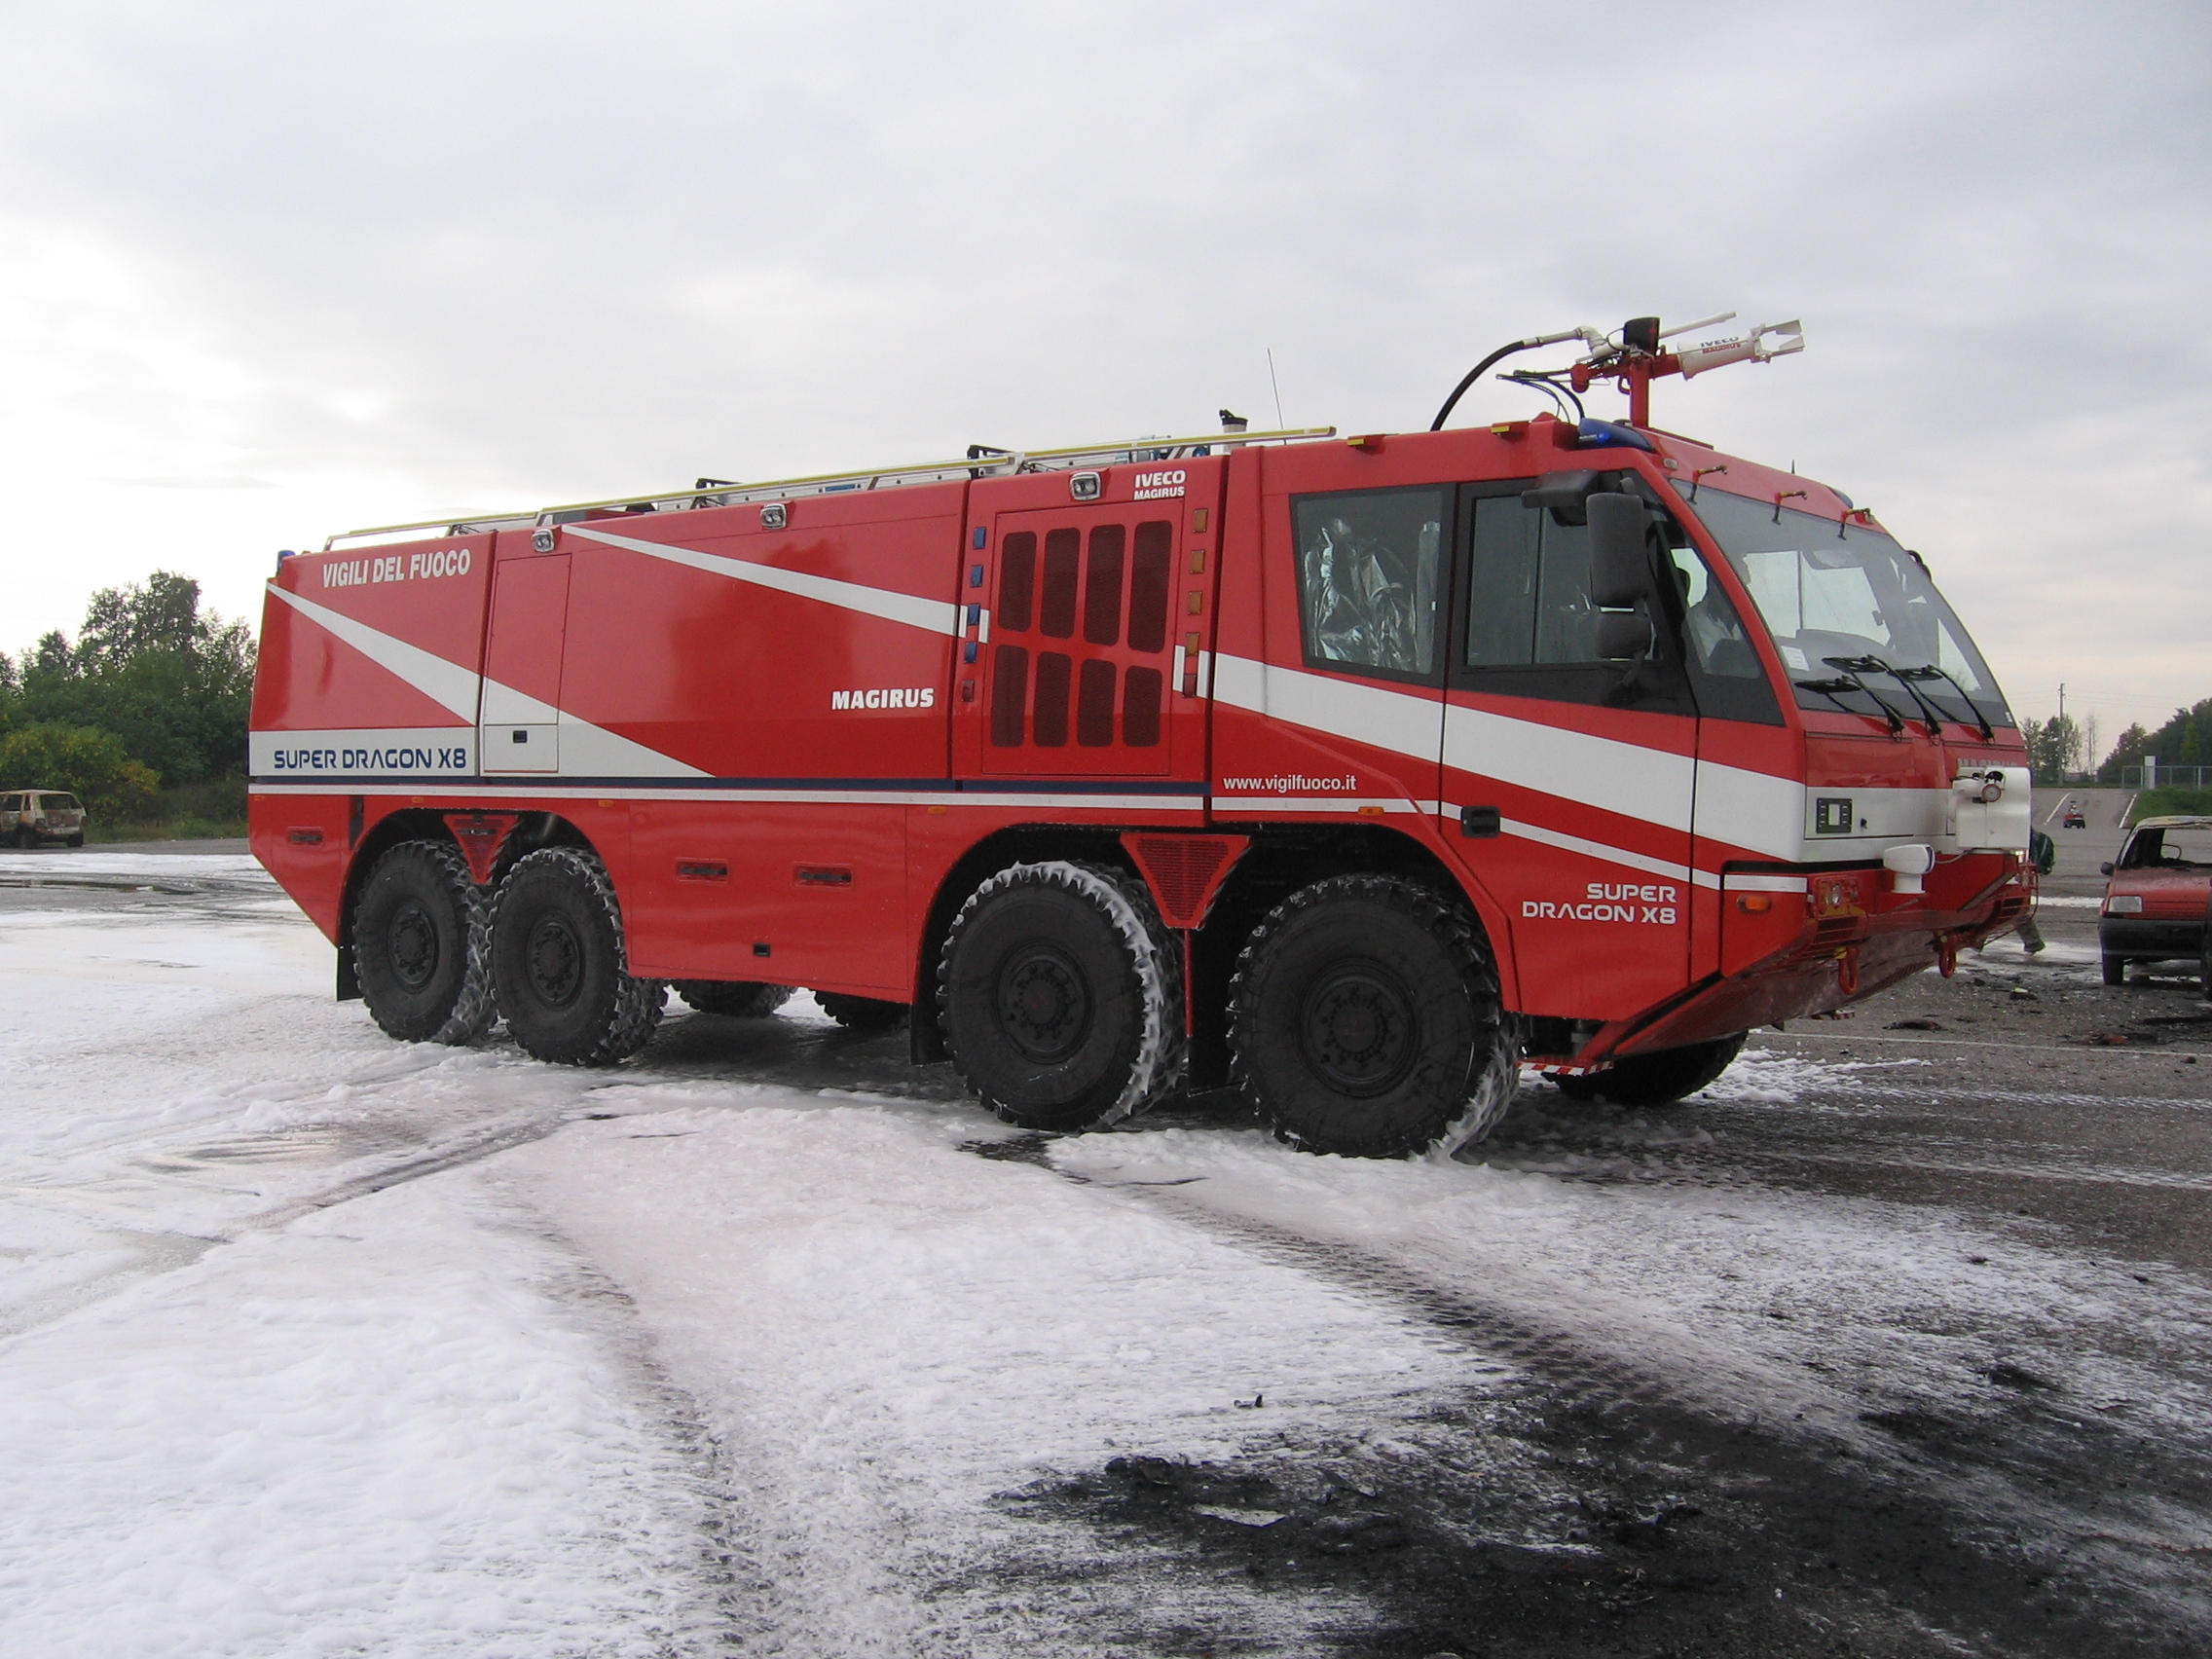 Iveco magirus photo - 4